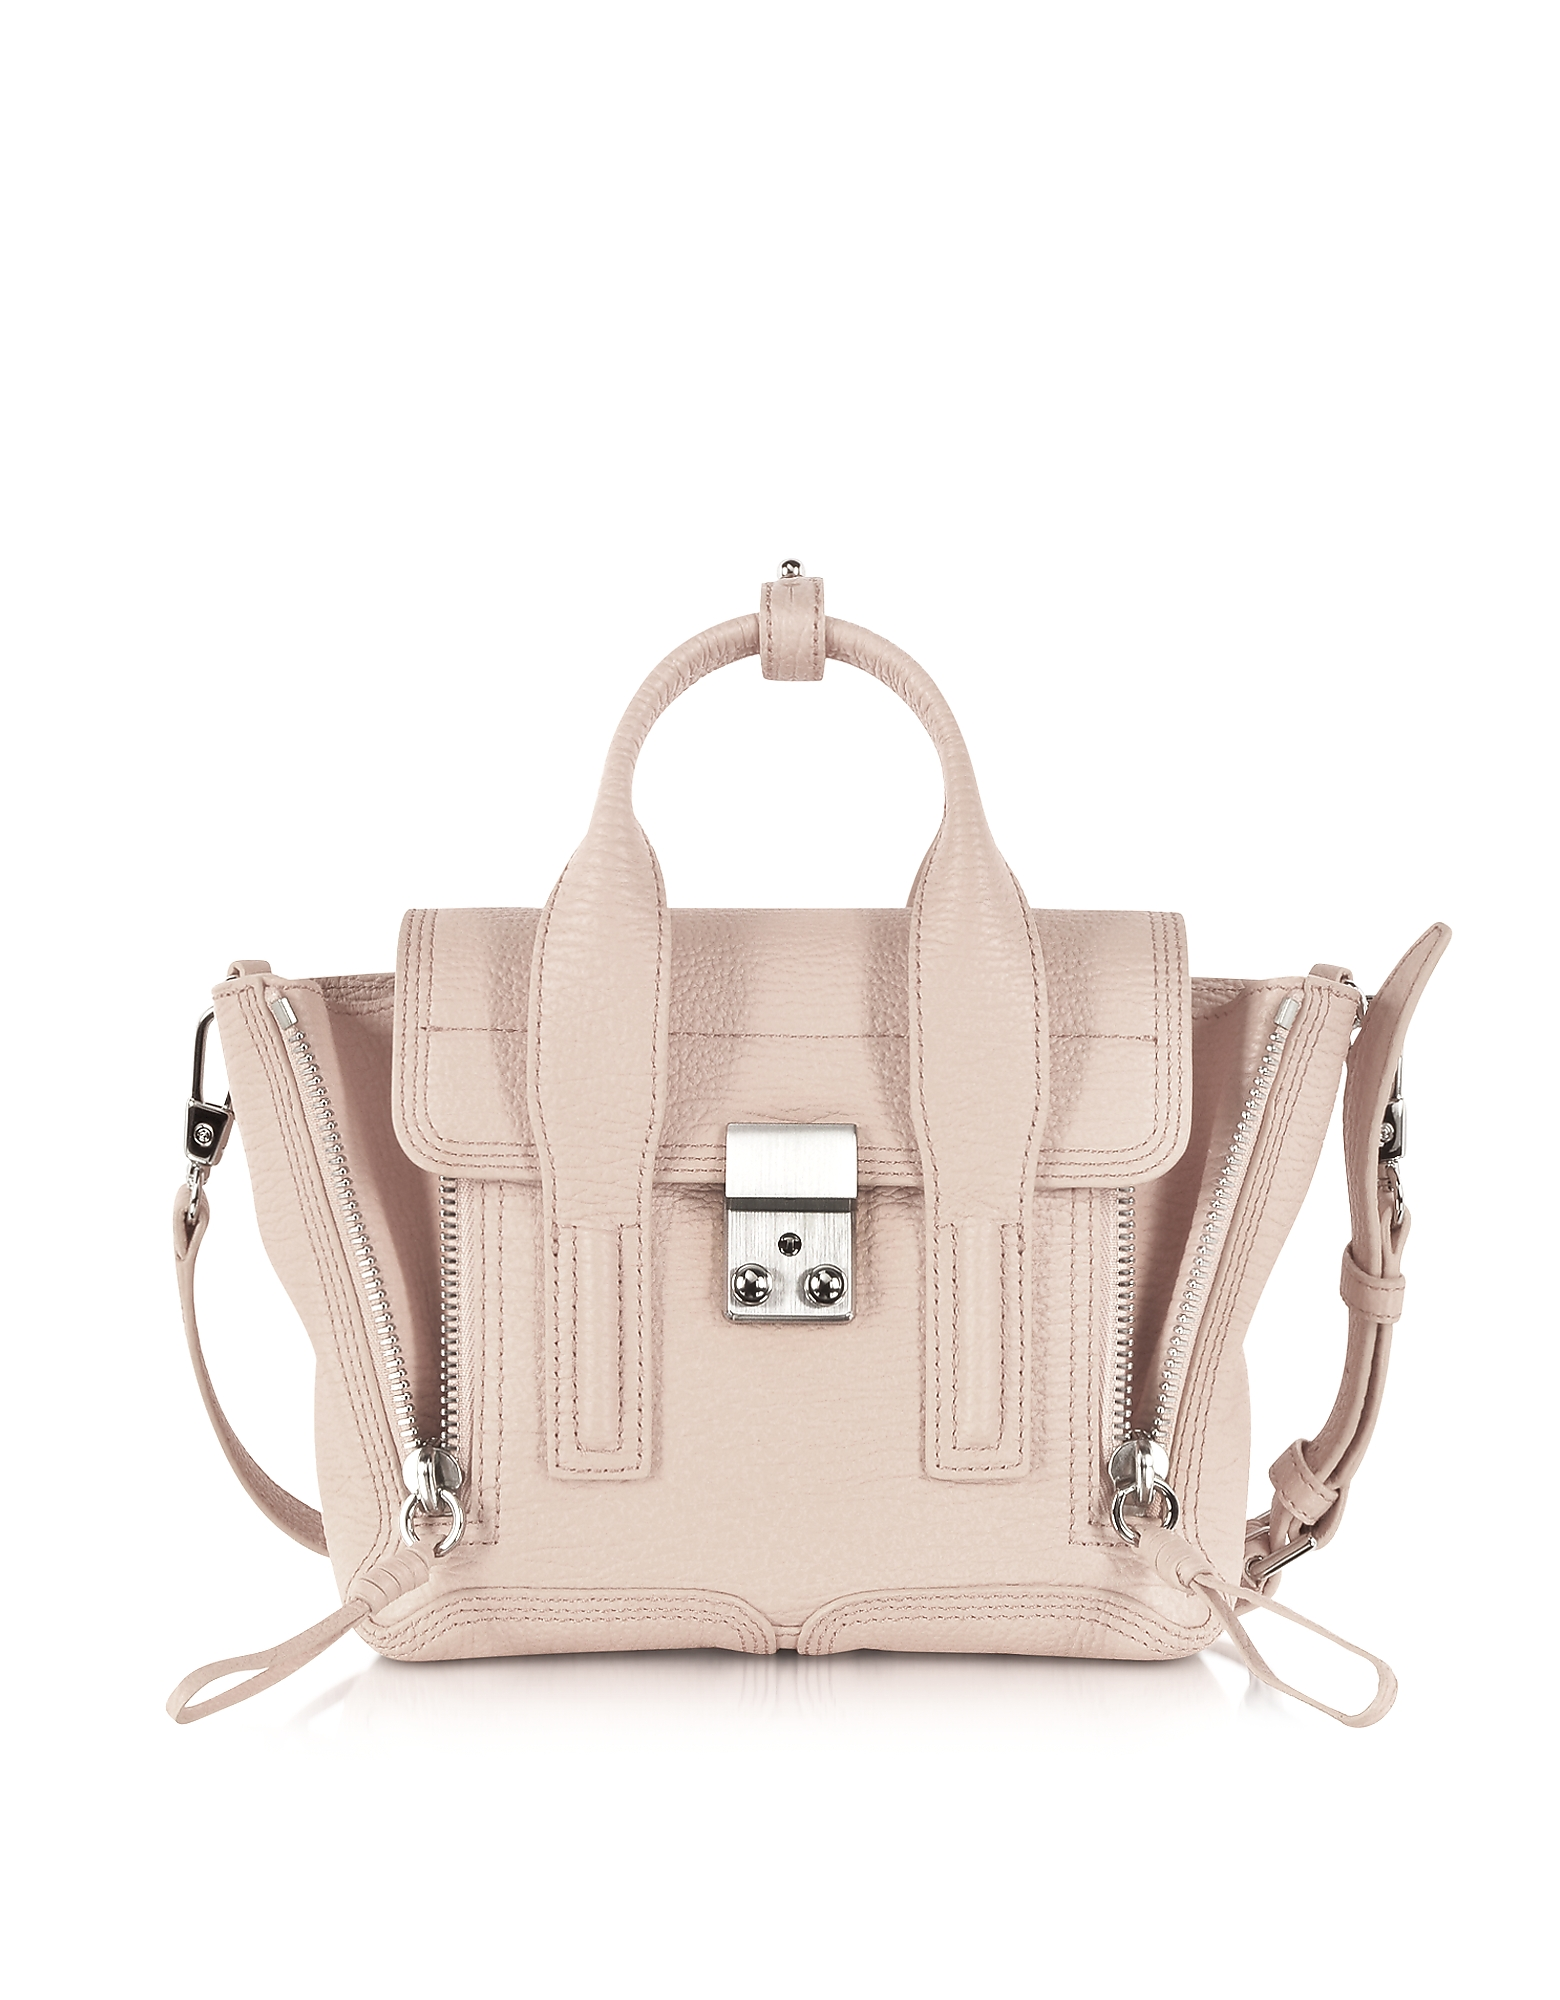 3.1 Phillip Lim Handbags, Feather Leather Pashli Mini Satchel Bag